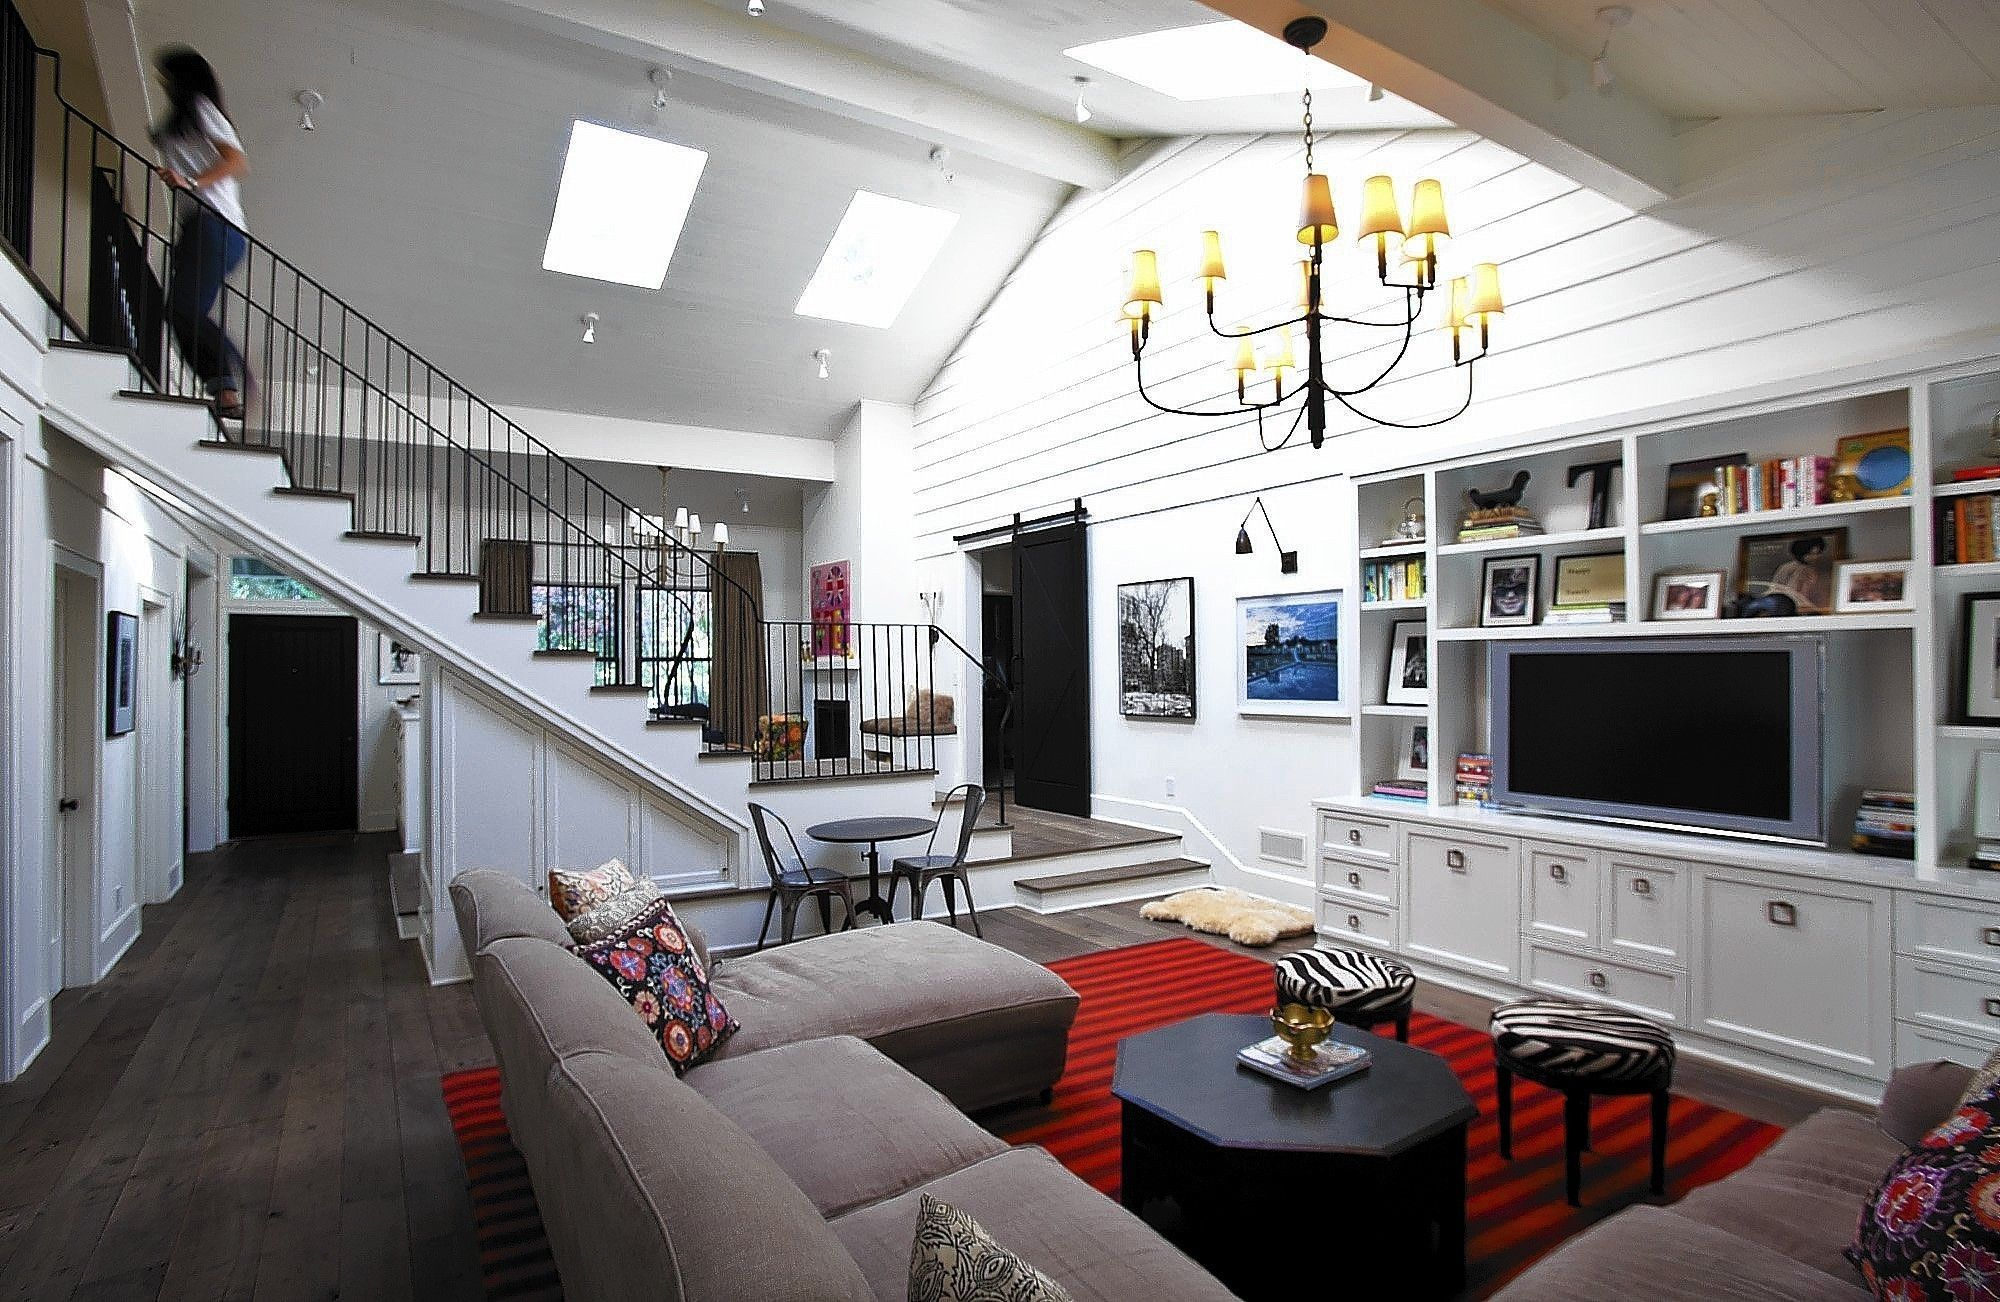 New Story Adds A New Chapter To Family Home Home Home And Family Contemporary Farmhouse